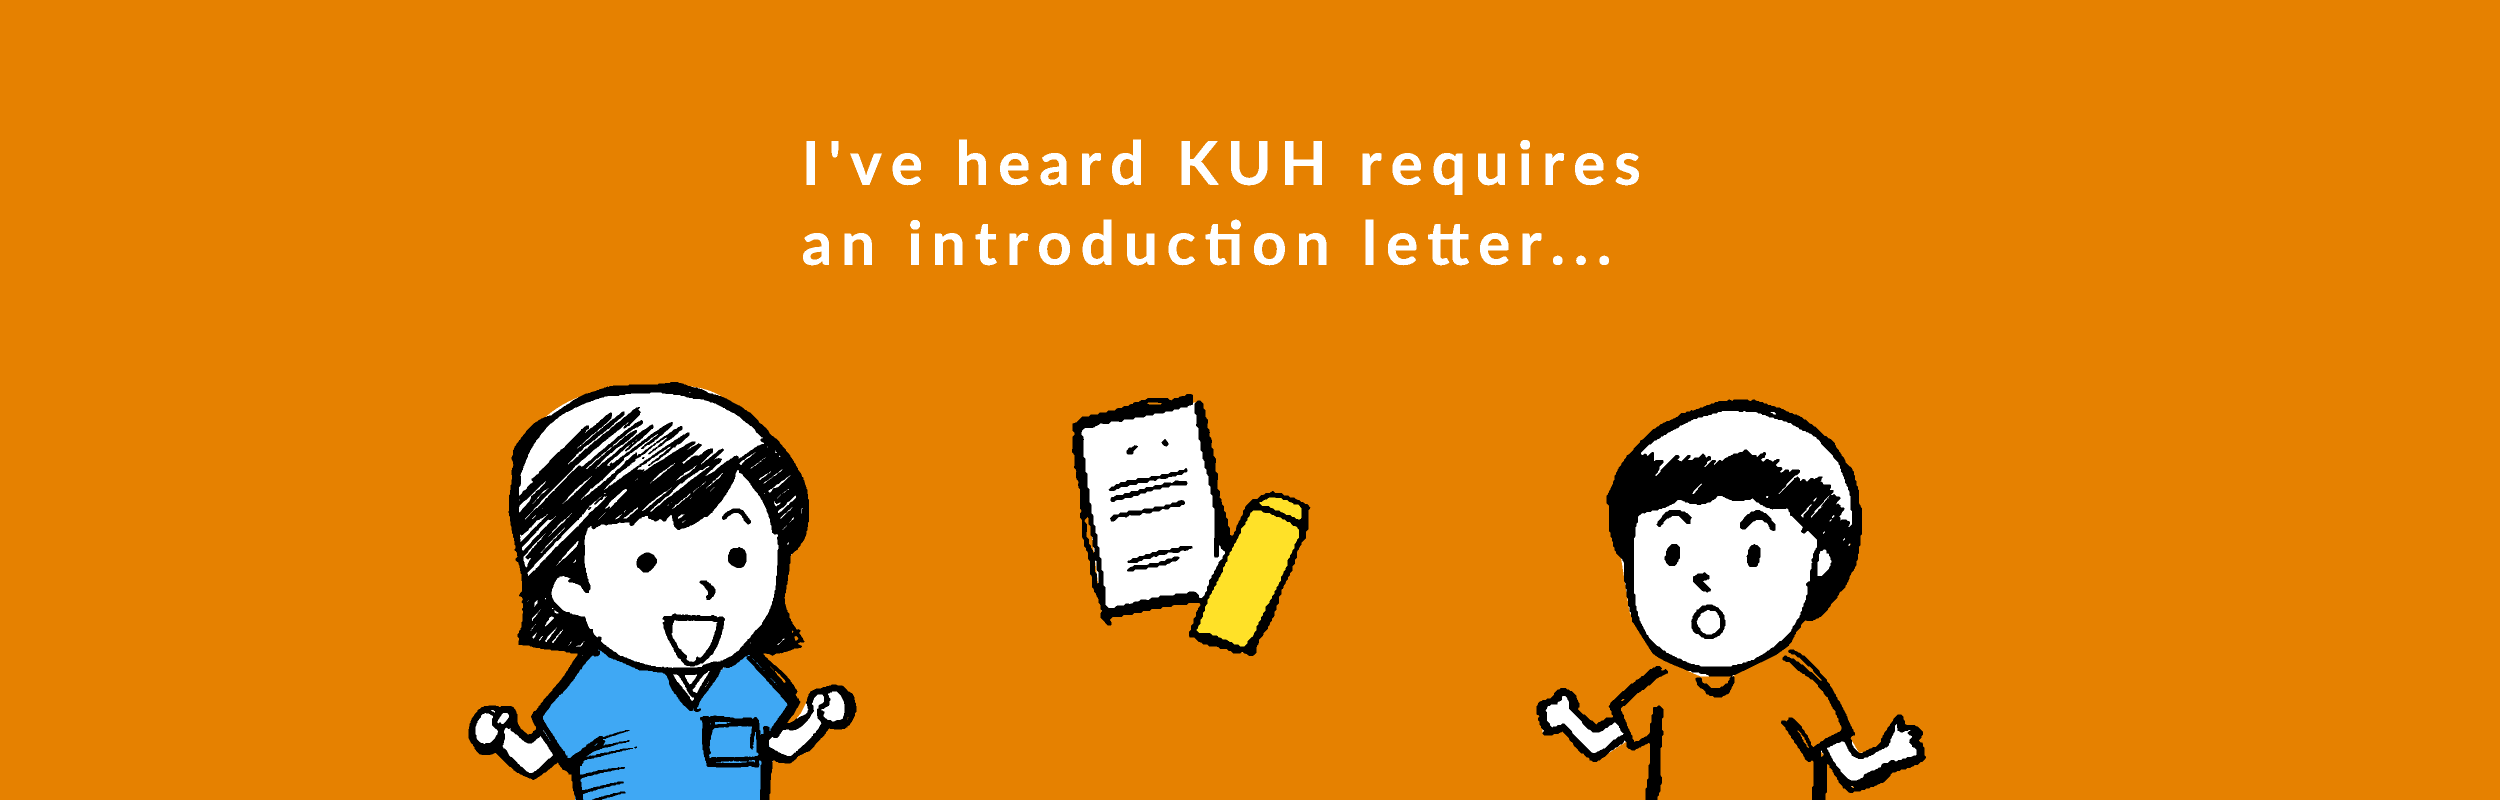 I've heard KUH requires an introduction letter...